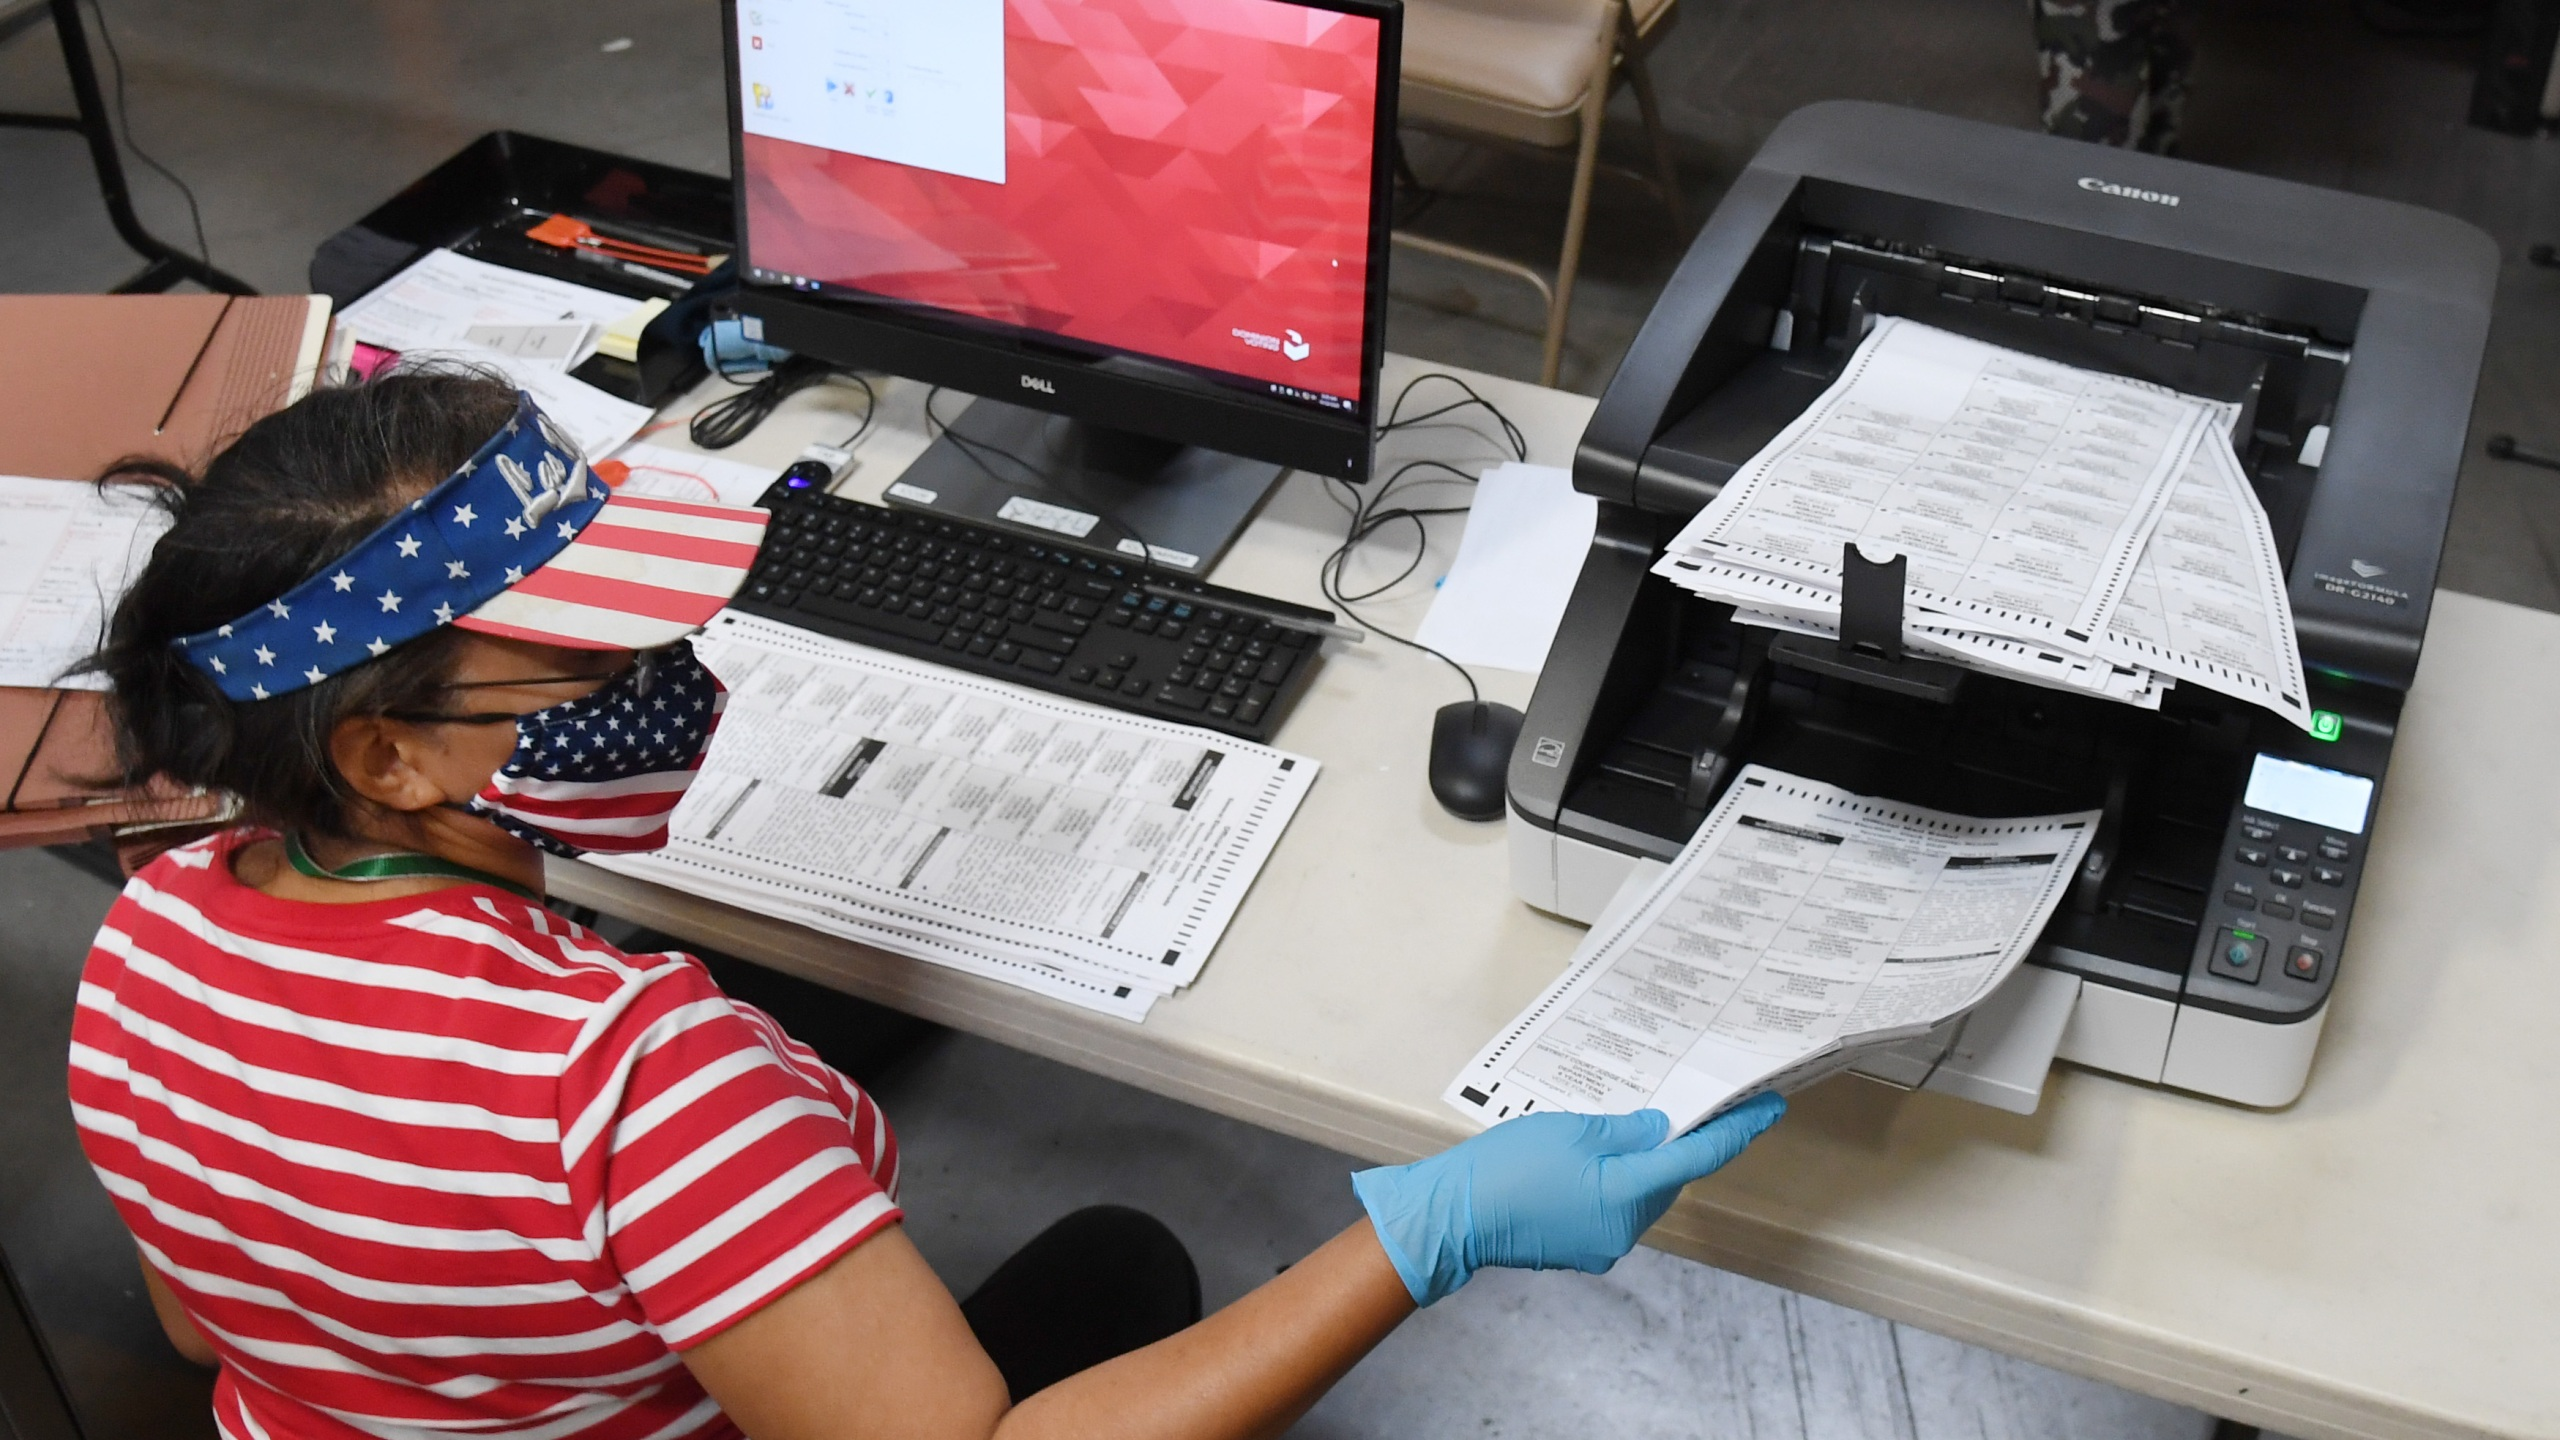 A Clark County election worker scans mail-in ballots at the Clark County Election Department on Oct. 20, 2020, in North Las Vegas, Nevada. In-person early voting for the general election in the battleground state began on Oct. 17 and continues through Oct. 30. Earlier this year, Nevada Gov. Steve Sisolak signed a bill mandating that all registered voters in the state receive a mail-in ballot for the first time to help keep people safe from the coronavirus (COVID-19). (Ethan Miller/Getty Images)